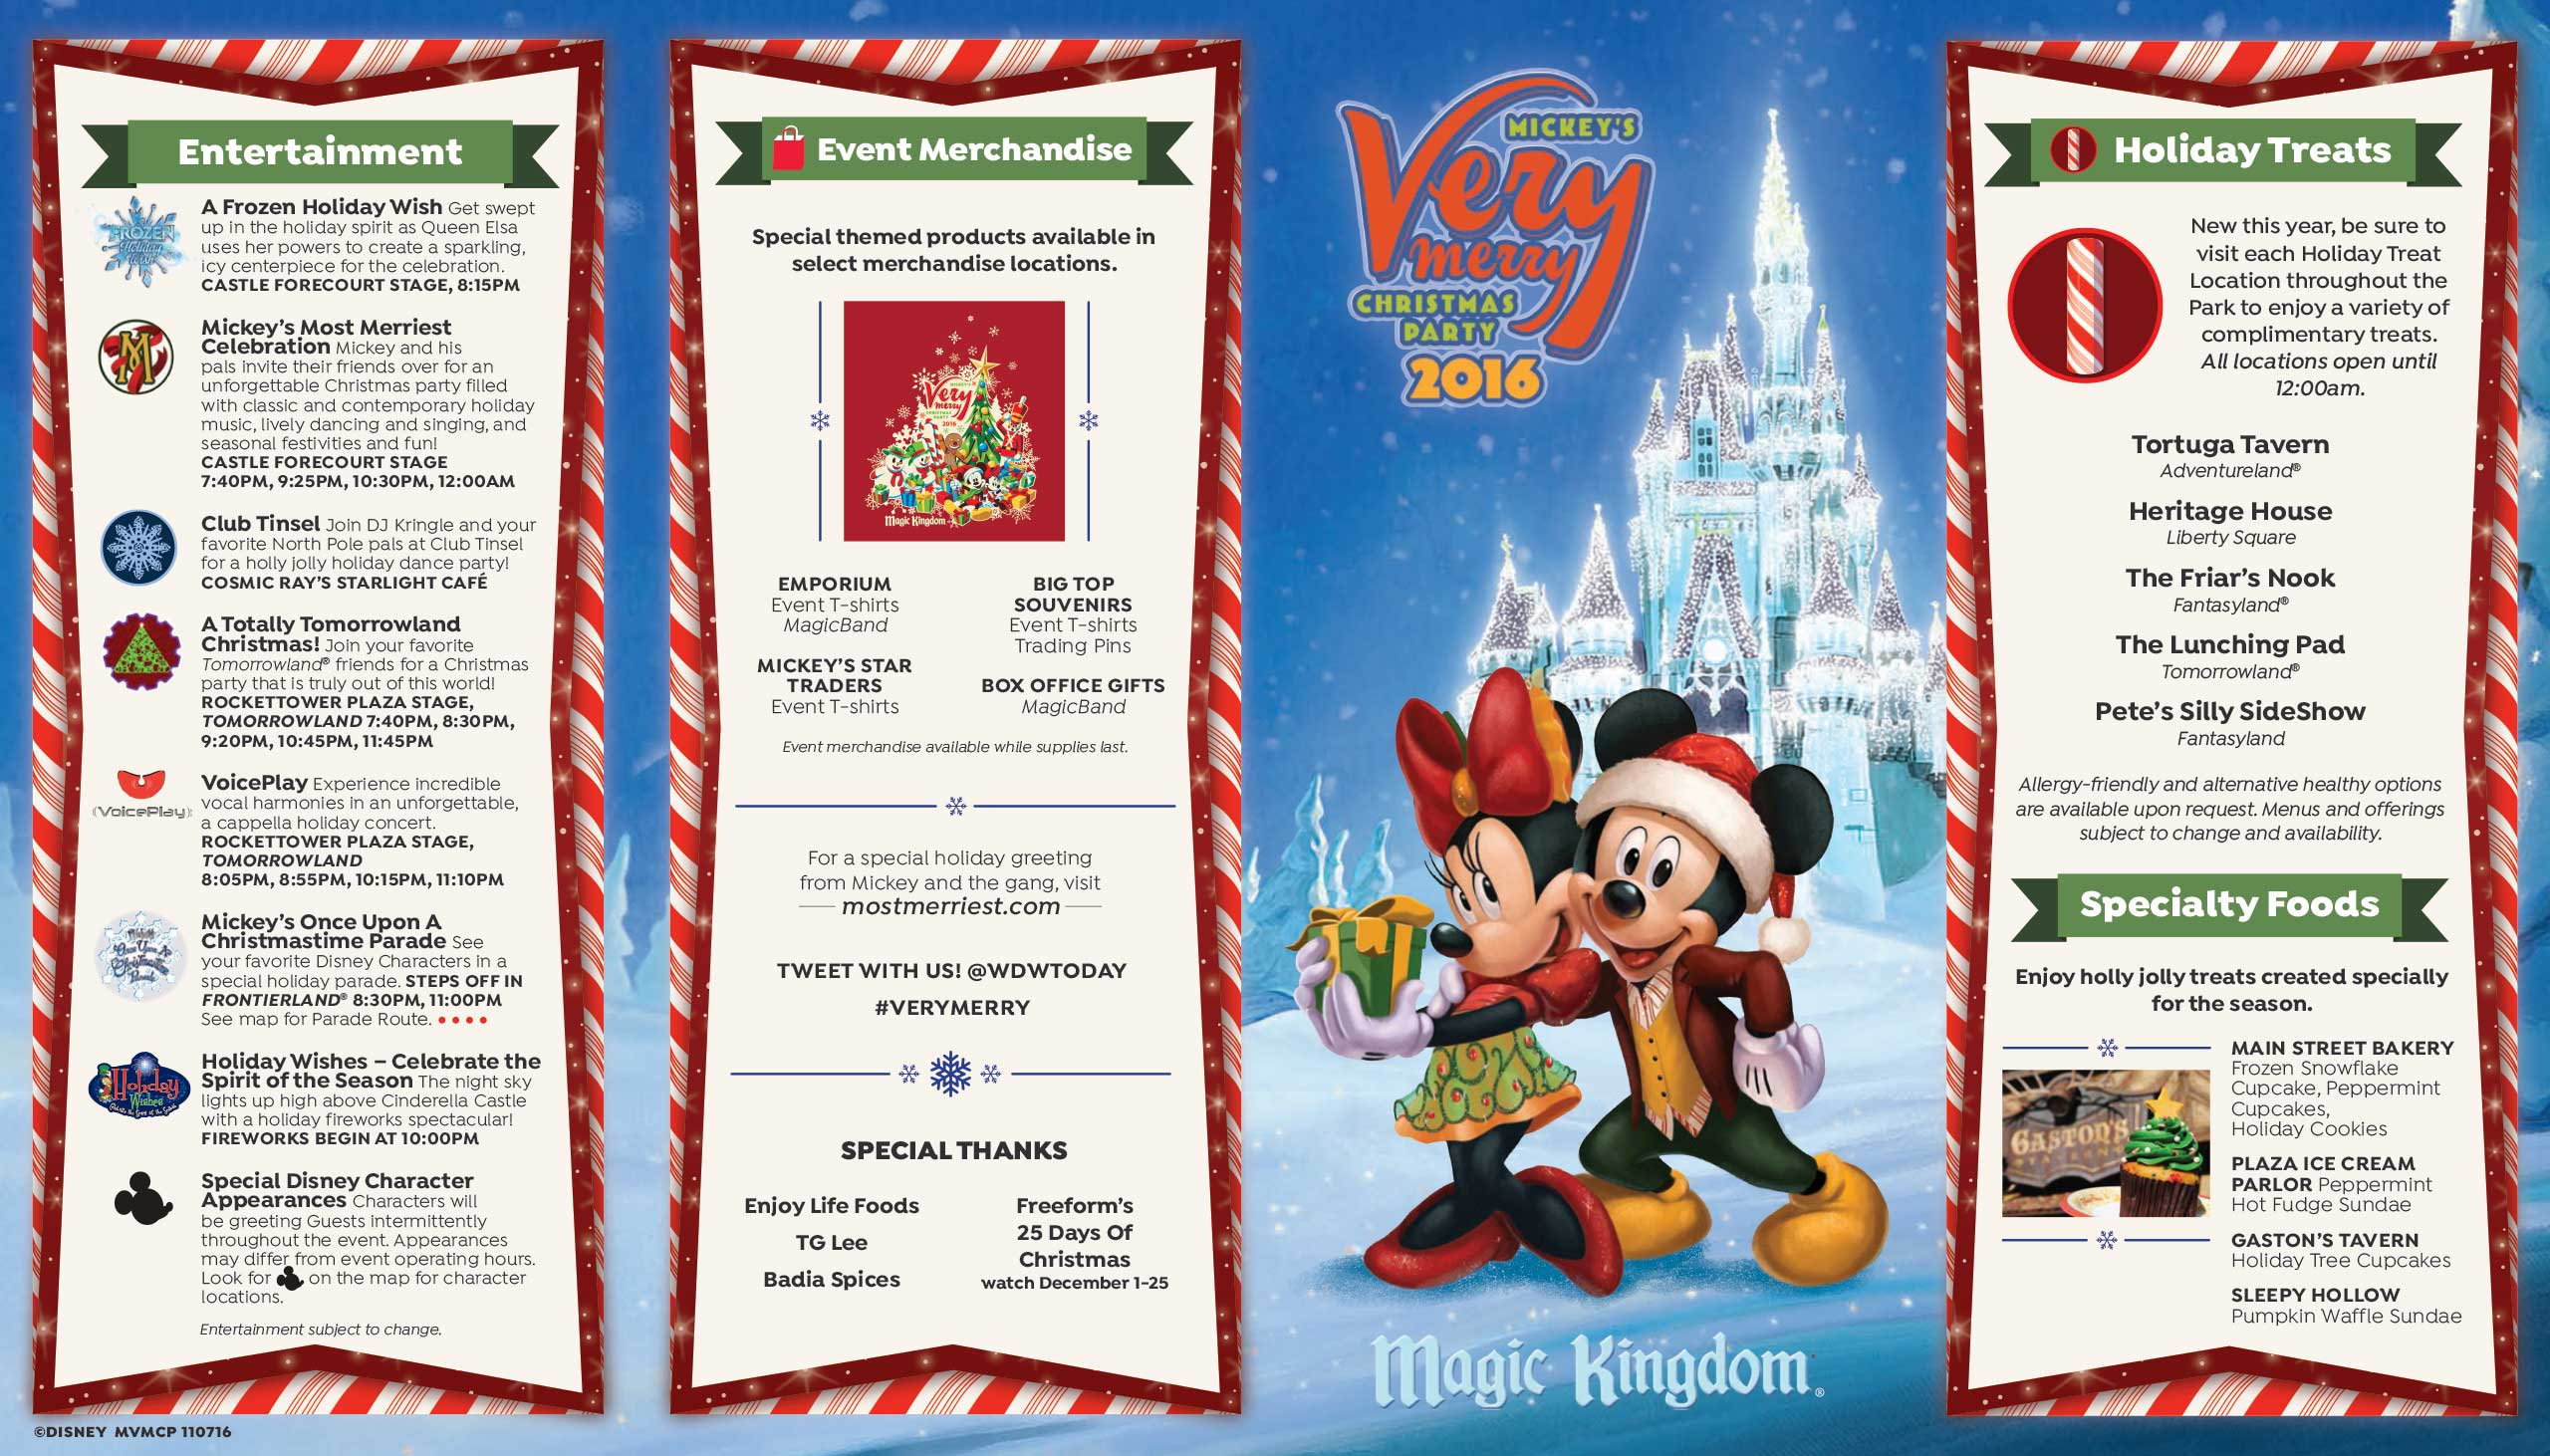 Mickeys Very Merry Christmas Party 2020 Brochure Mickey's Very Merry Christmas Party 2016 guide map   Photo 1 of 2